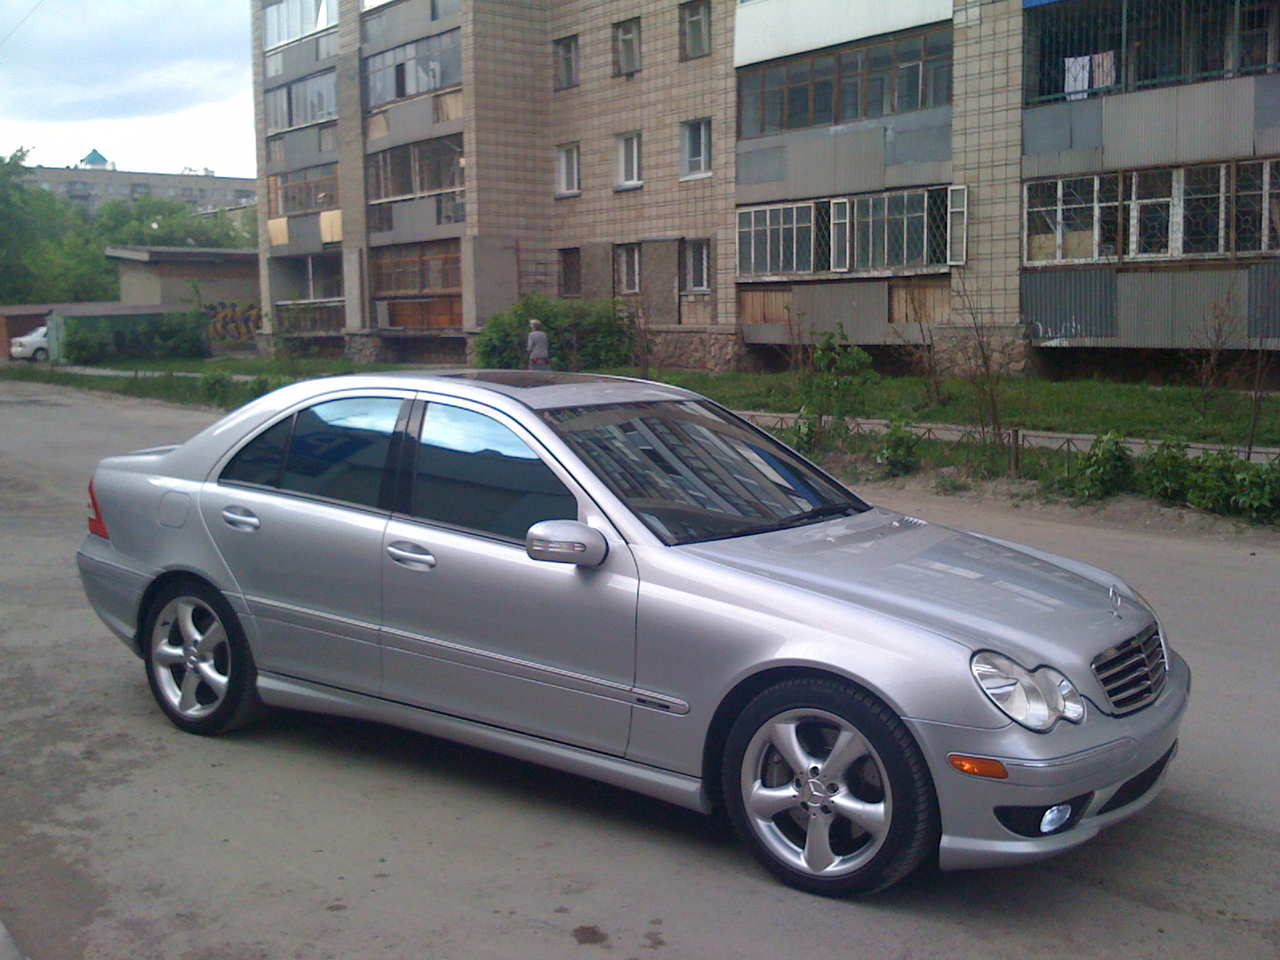 2006 mercedes benz c class pictures gasoline fr or rr automatic for sale. Black Bedroom Furniture Sets. Home Design Ideas